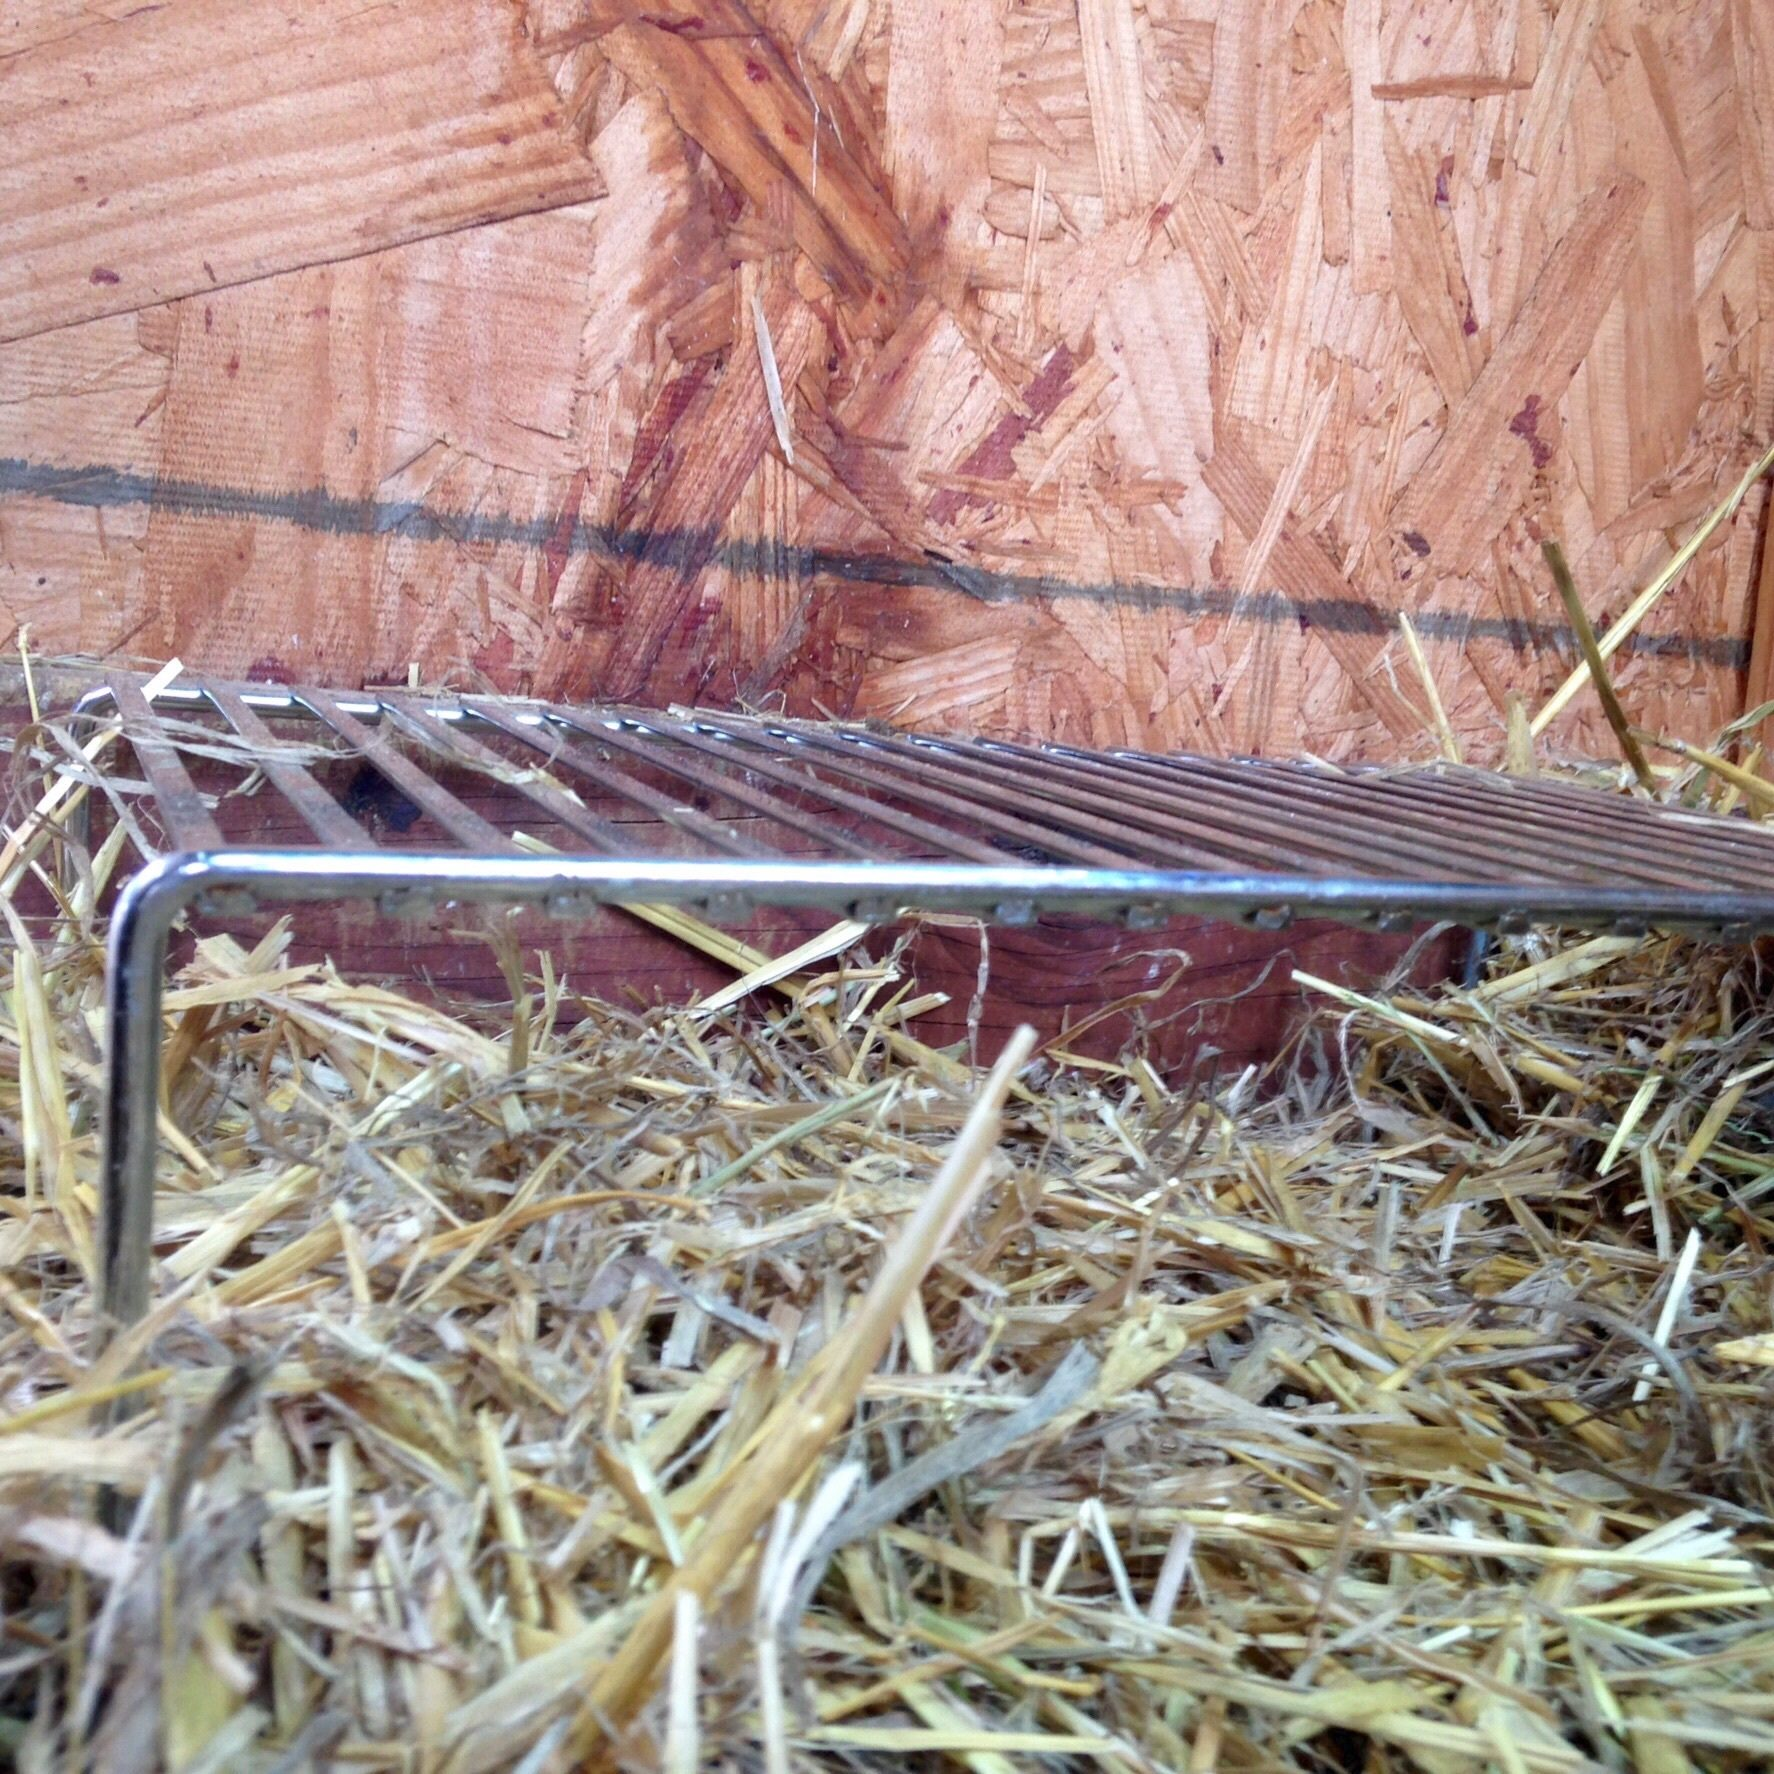 The gang quickly outgrew the tomato cage brooder so to give them more room I switch over to a wire rack,